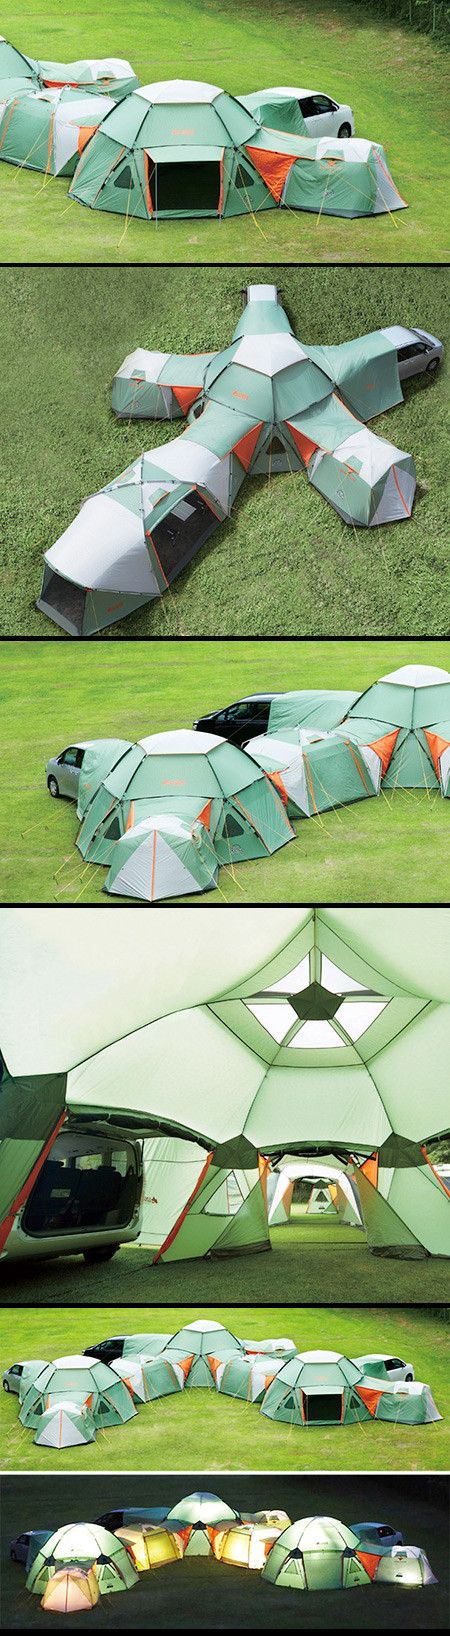 Gigantic connected tent. This is a-mazing!!!